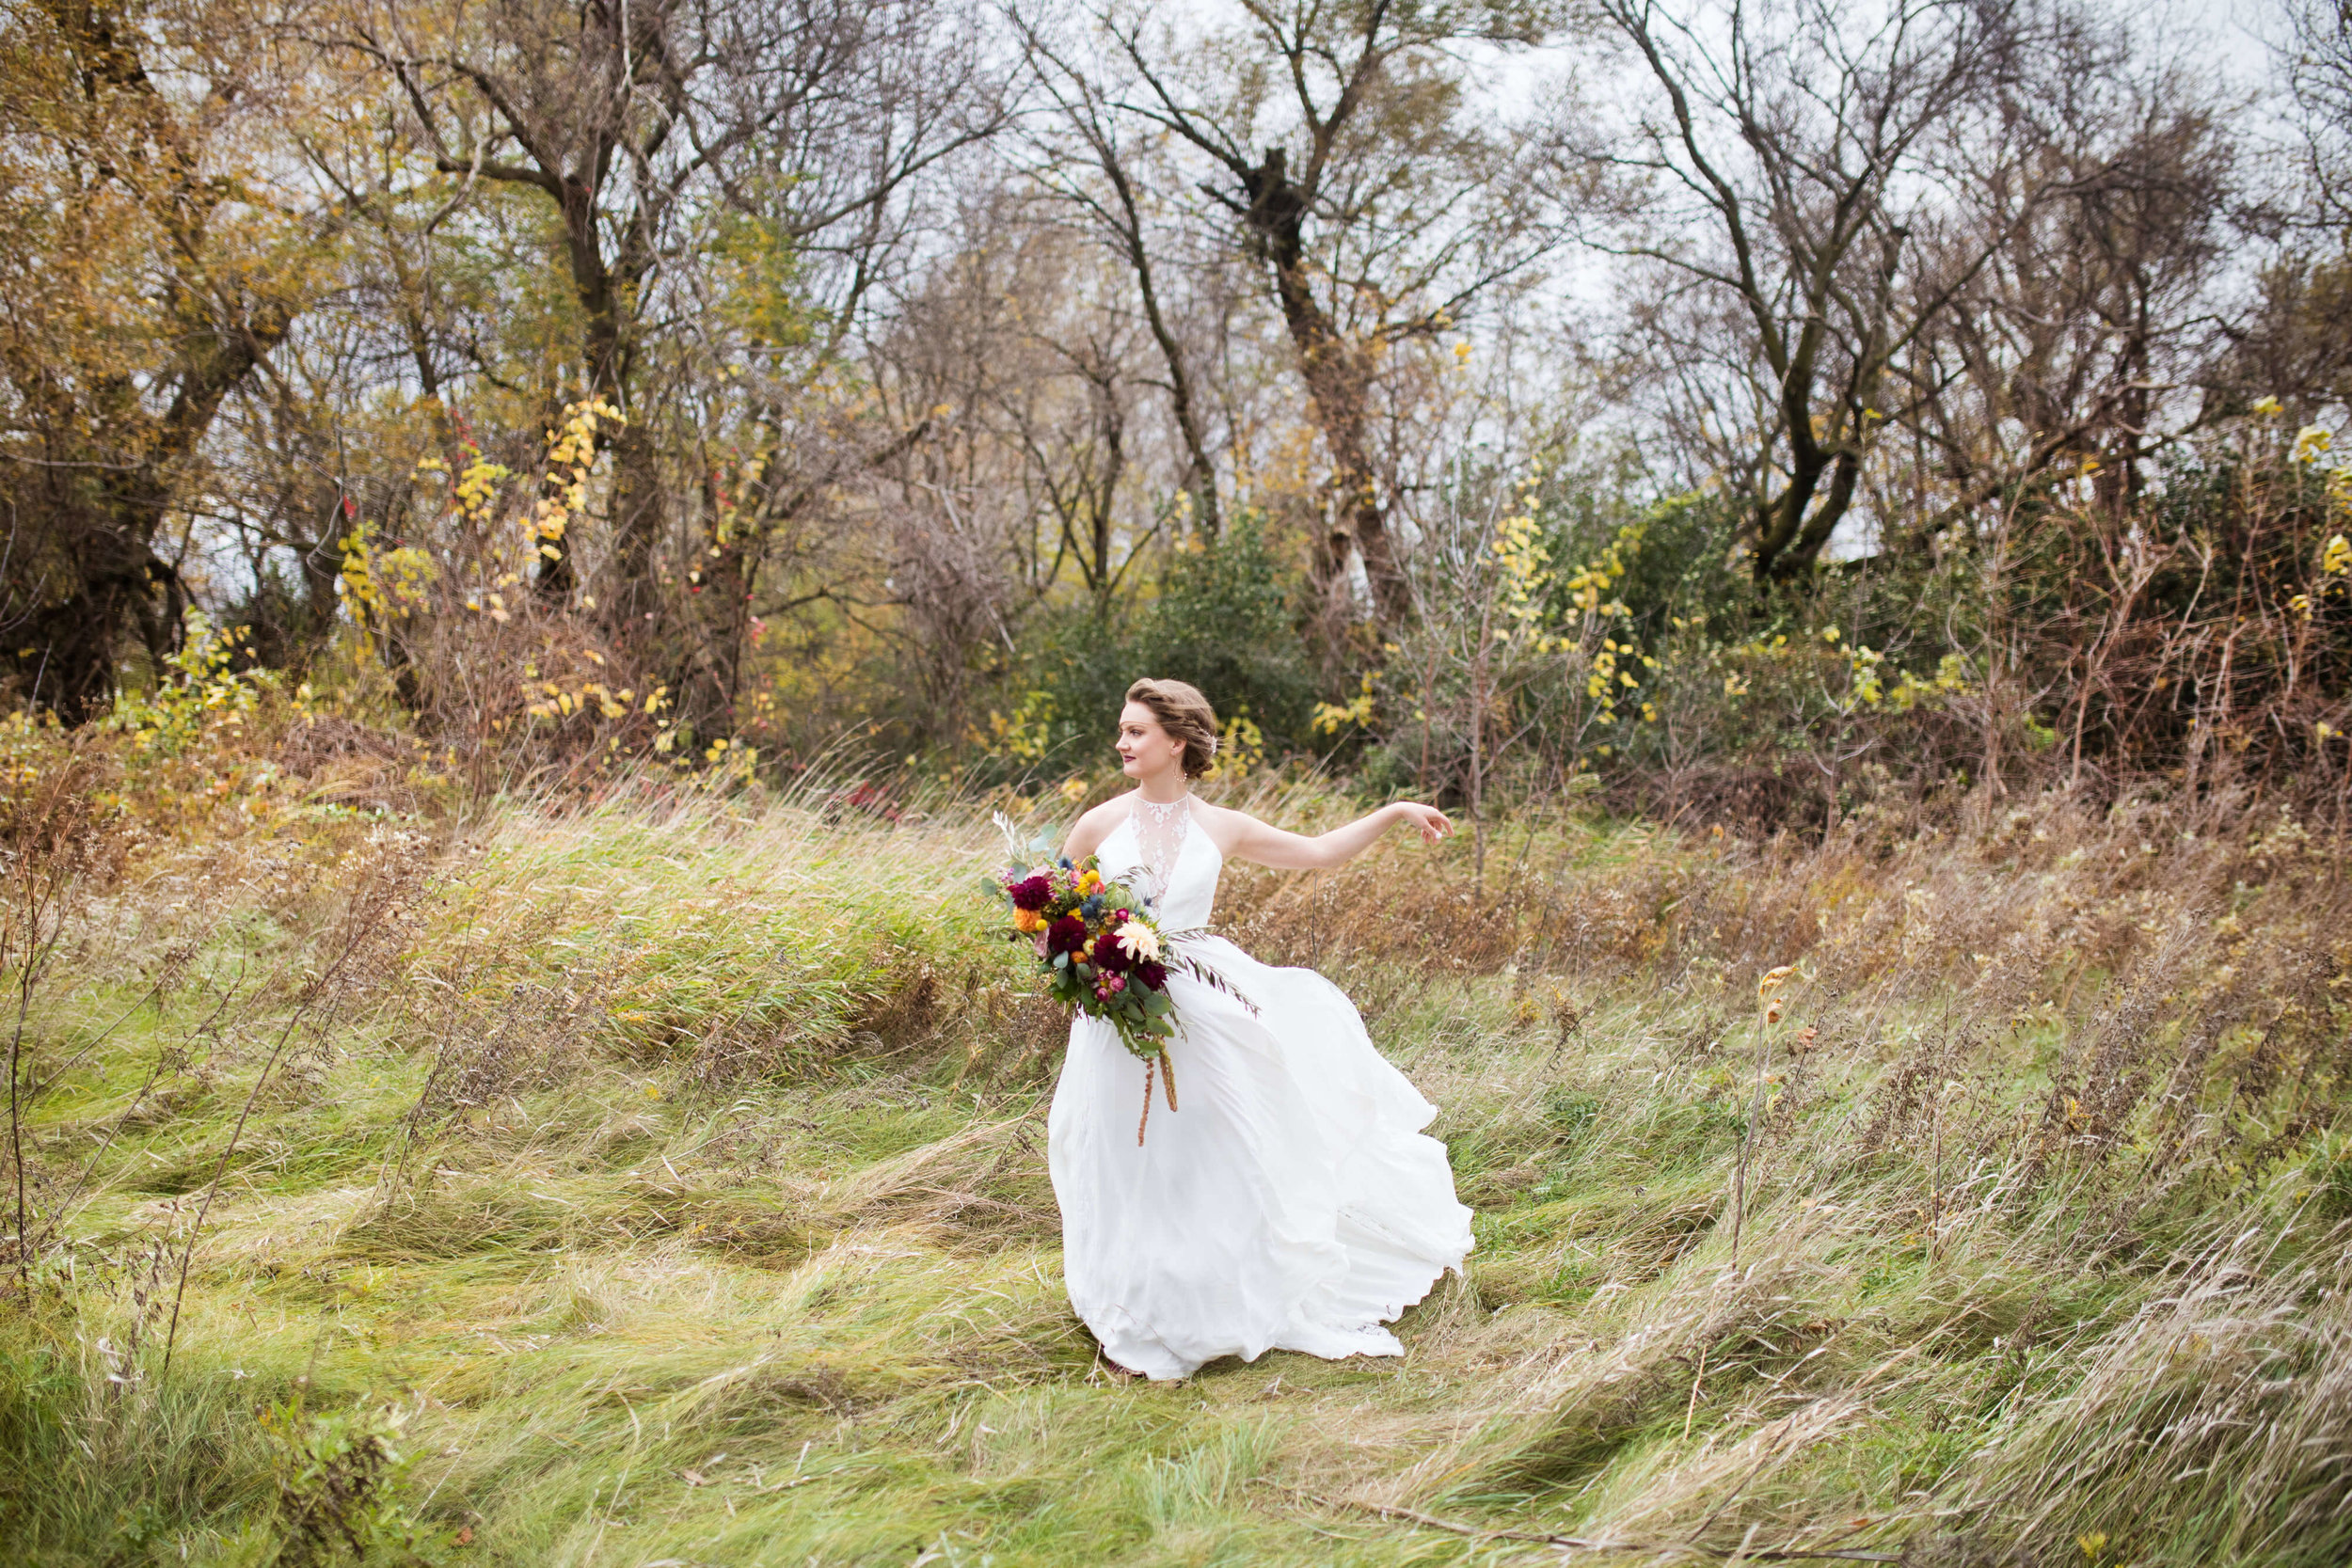 bride in the field with harvest bouquet | Minnesota wedding photographer Studio KH wedding dress details | wedding blog | Sixpence Events 70 Ways to Photograph Your Wedding Dress.jpg